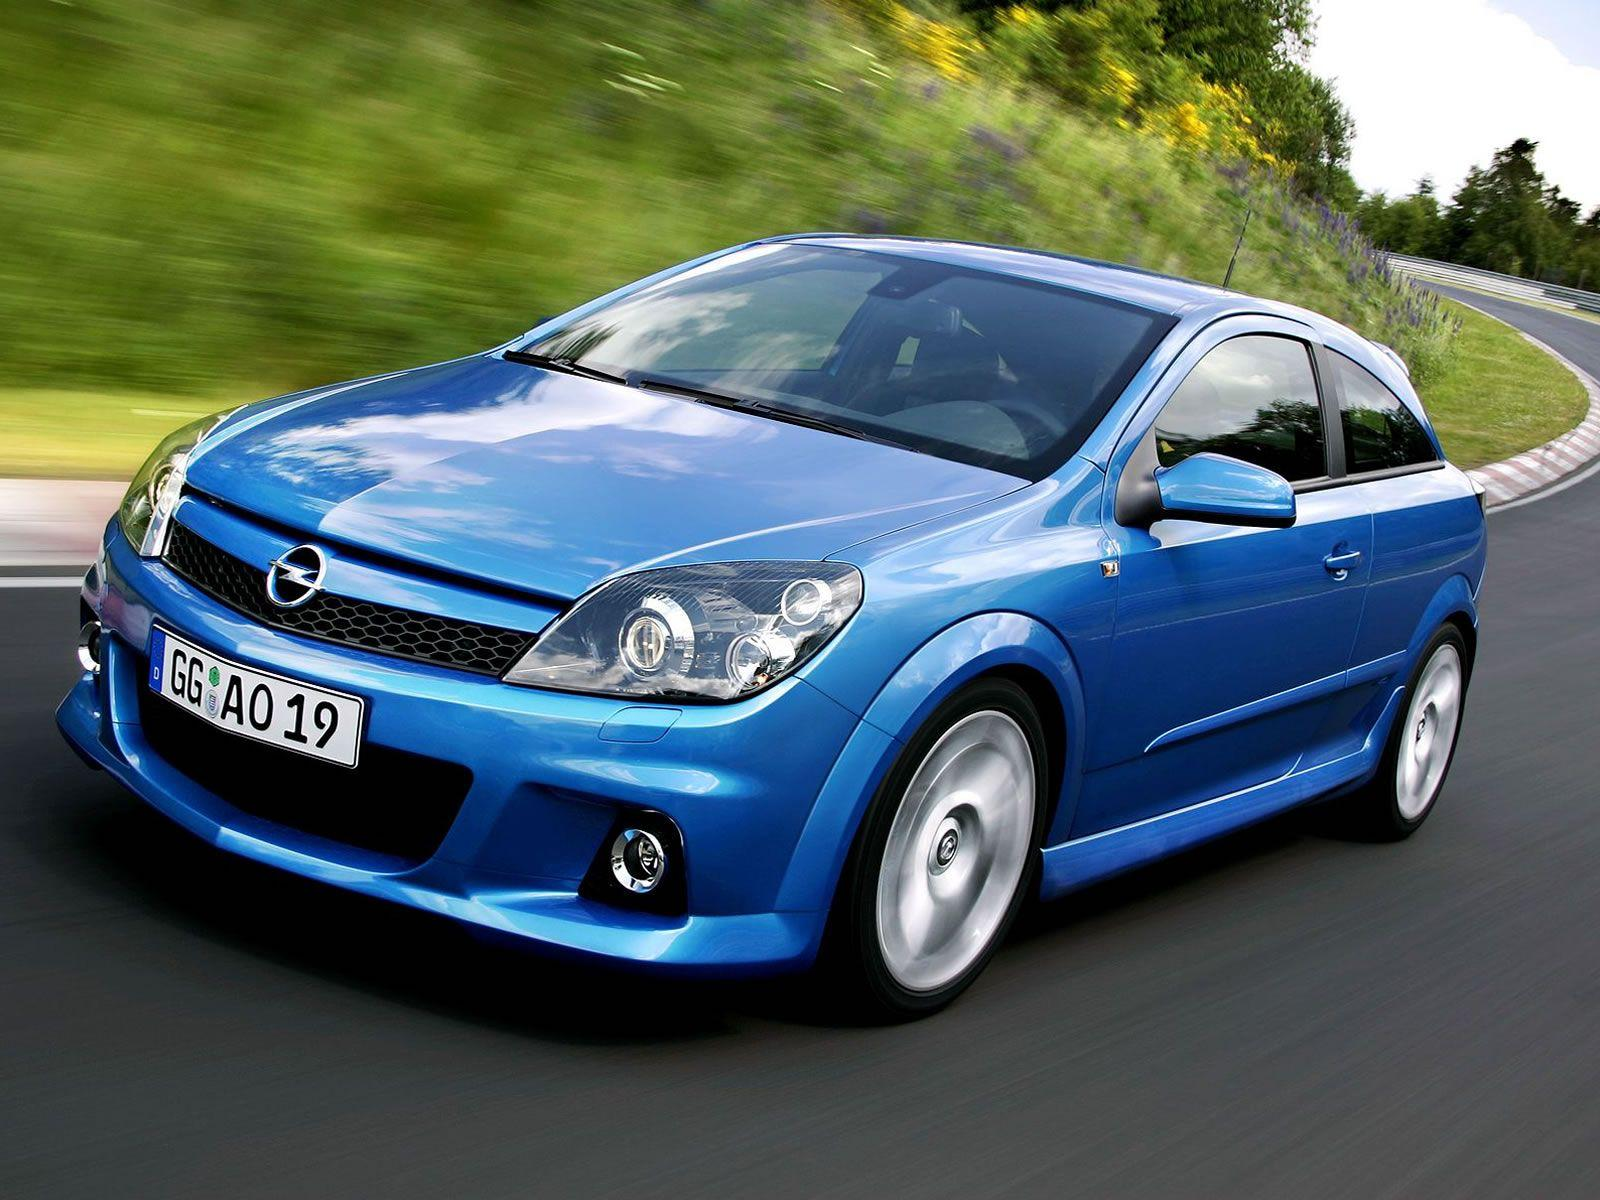 626 cars opel astra opc wallpapers